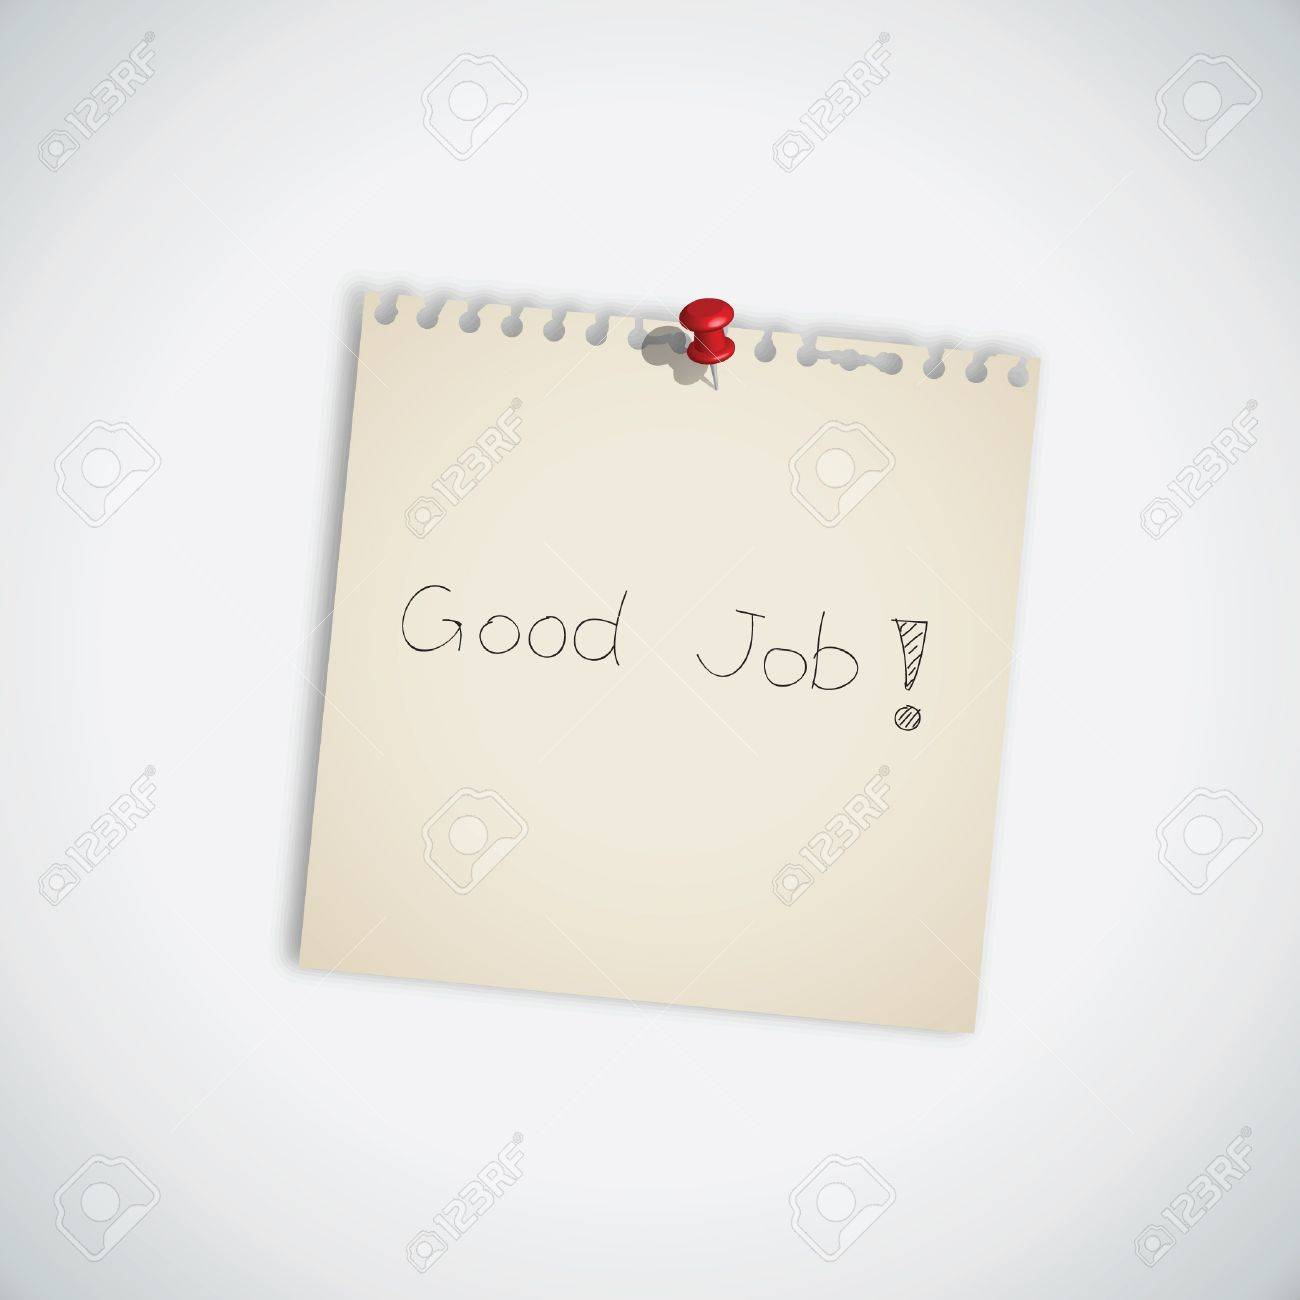 Good Job Word on Note Paper Stock Vector - 13984483